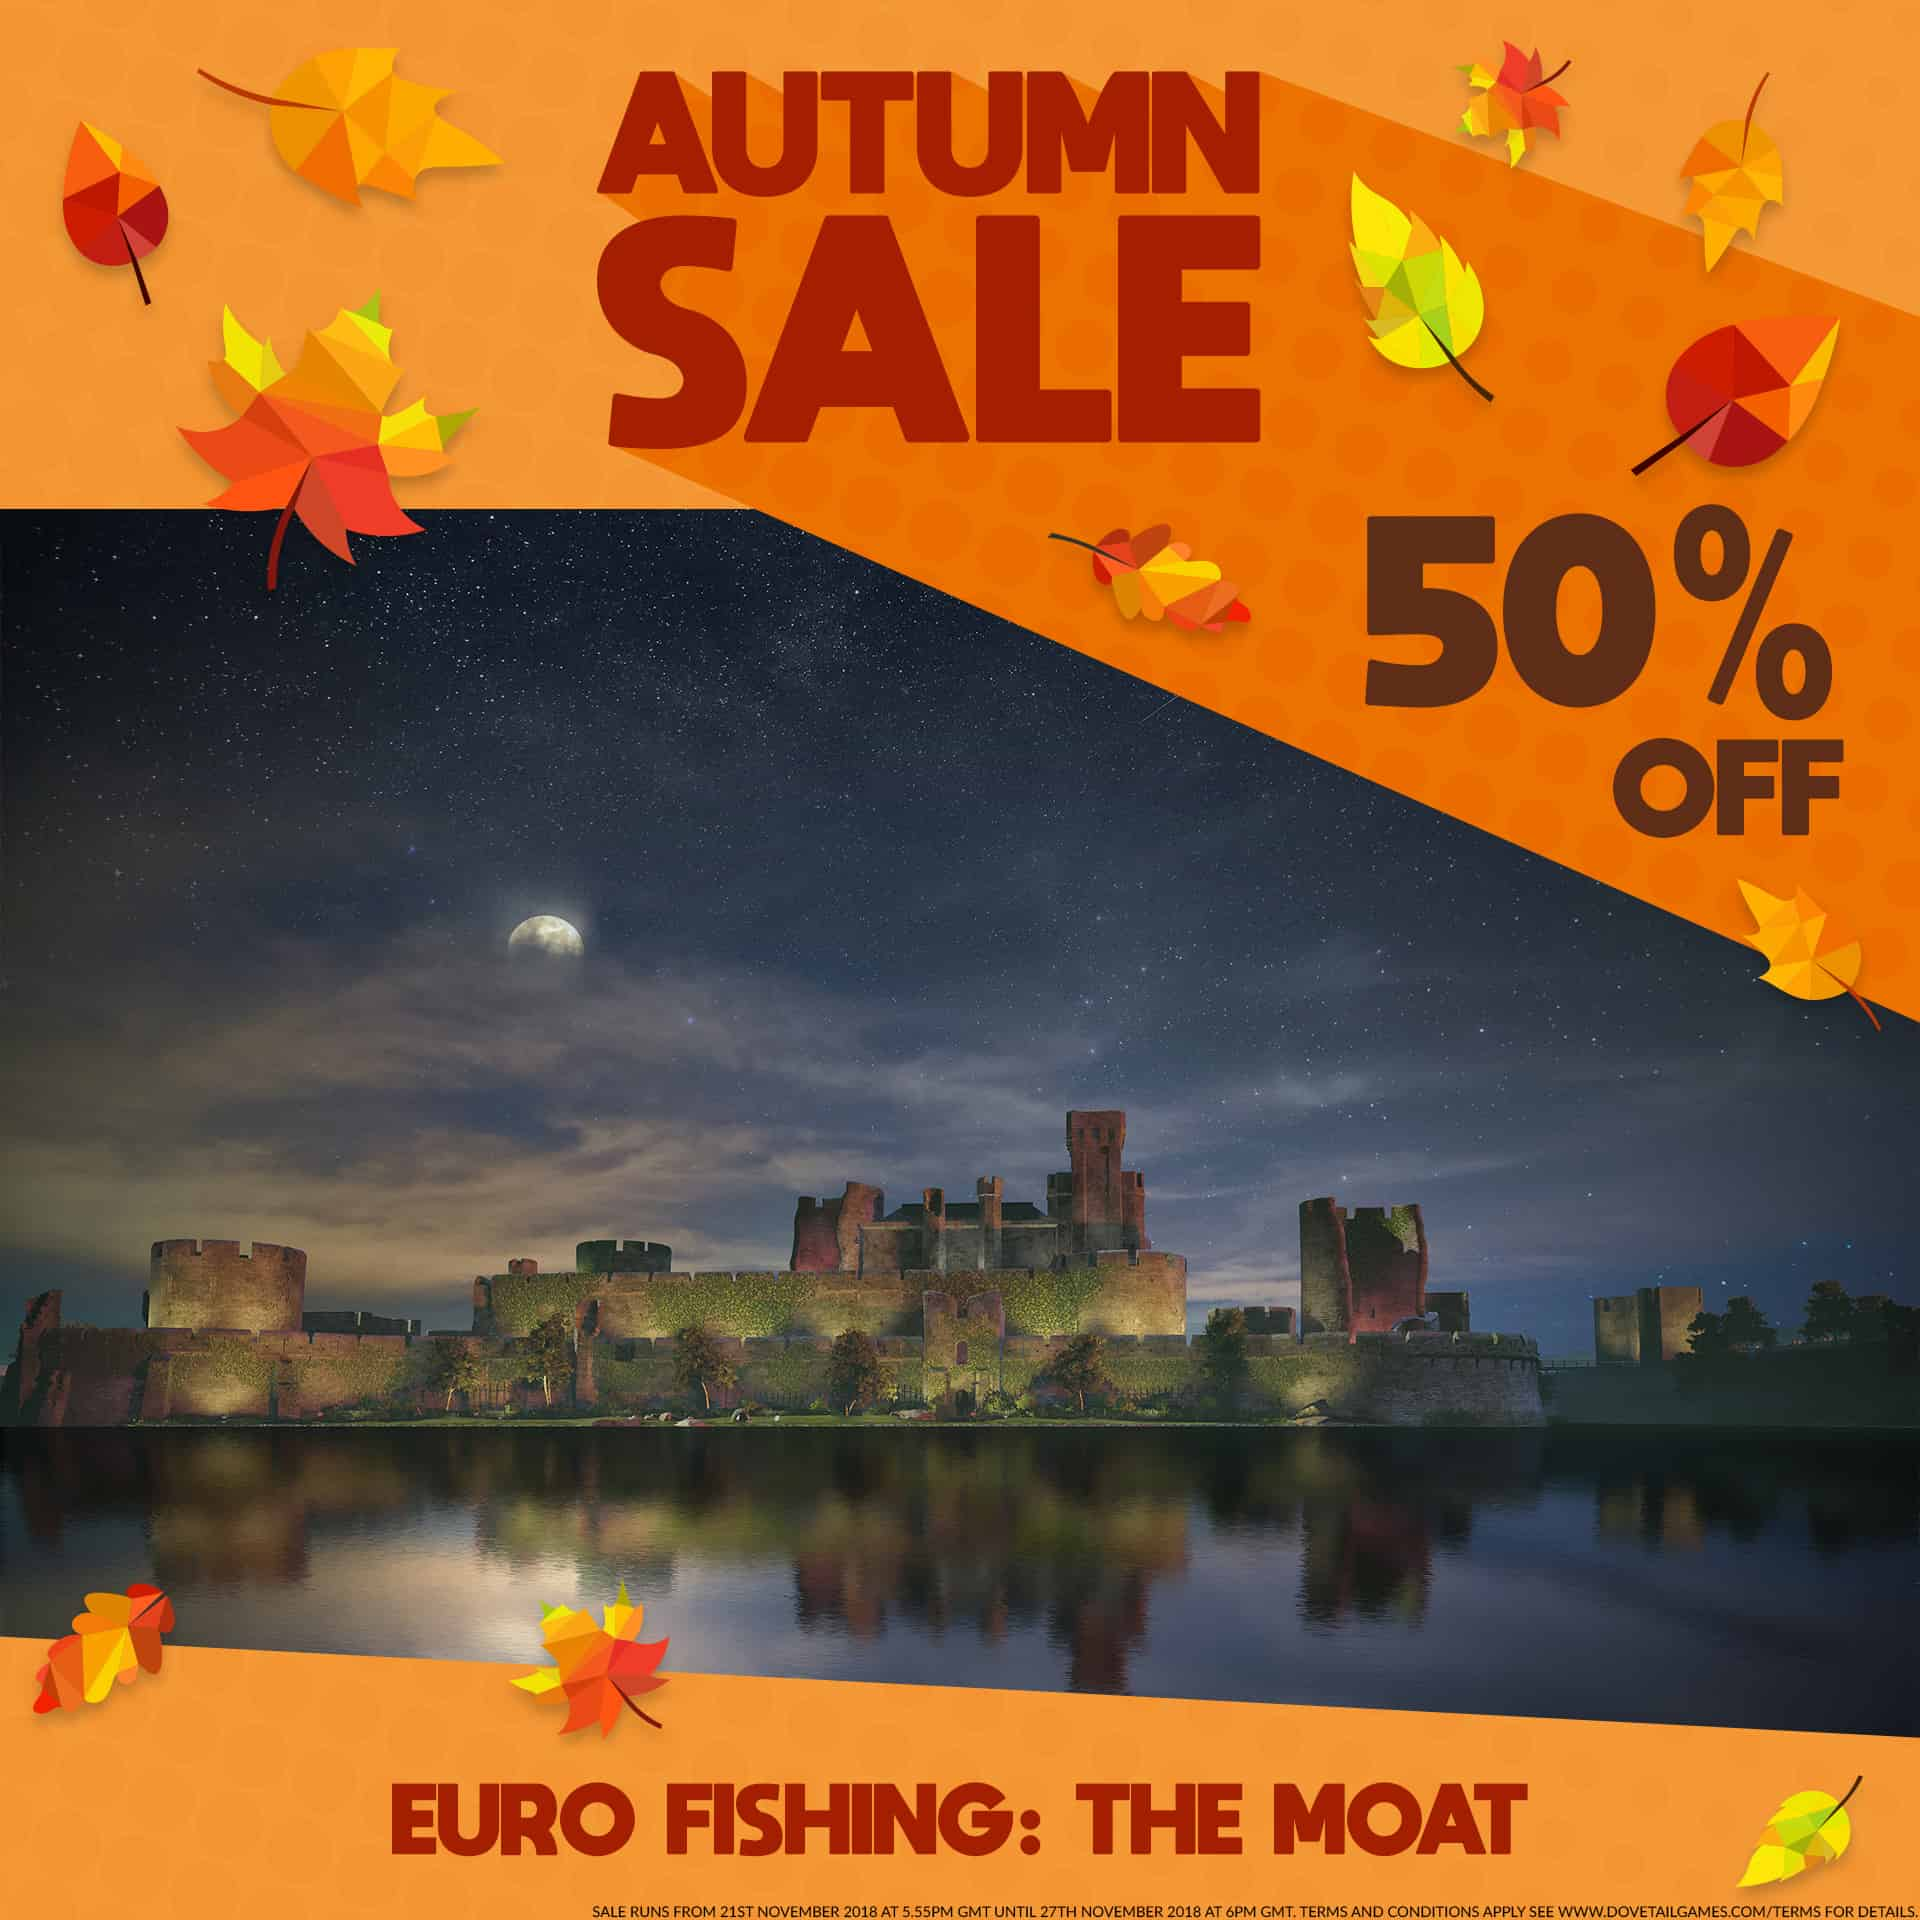 AutumnSale_Products_TheMoat